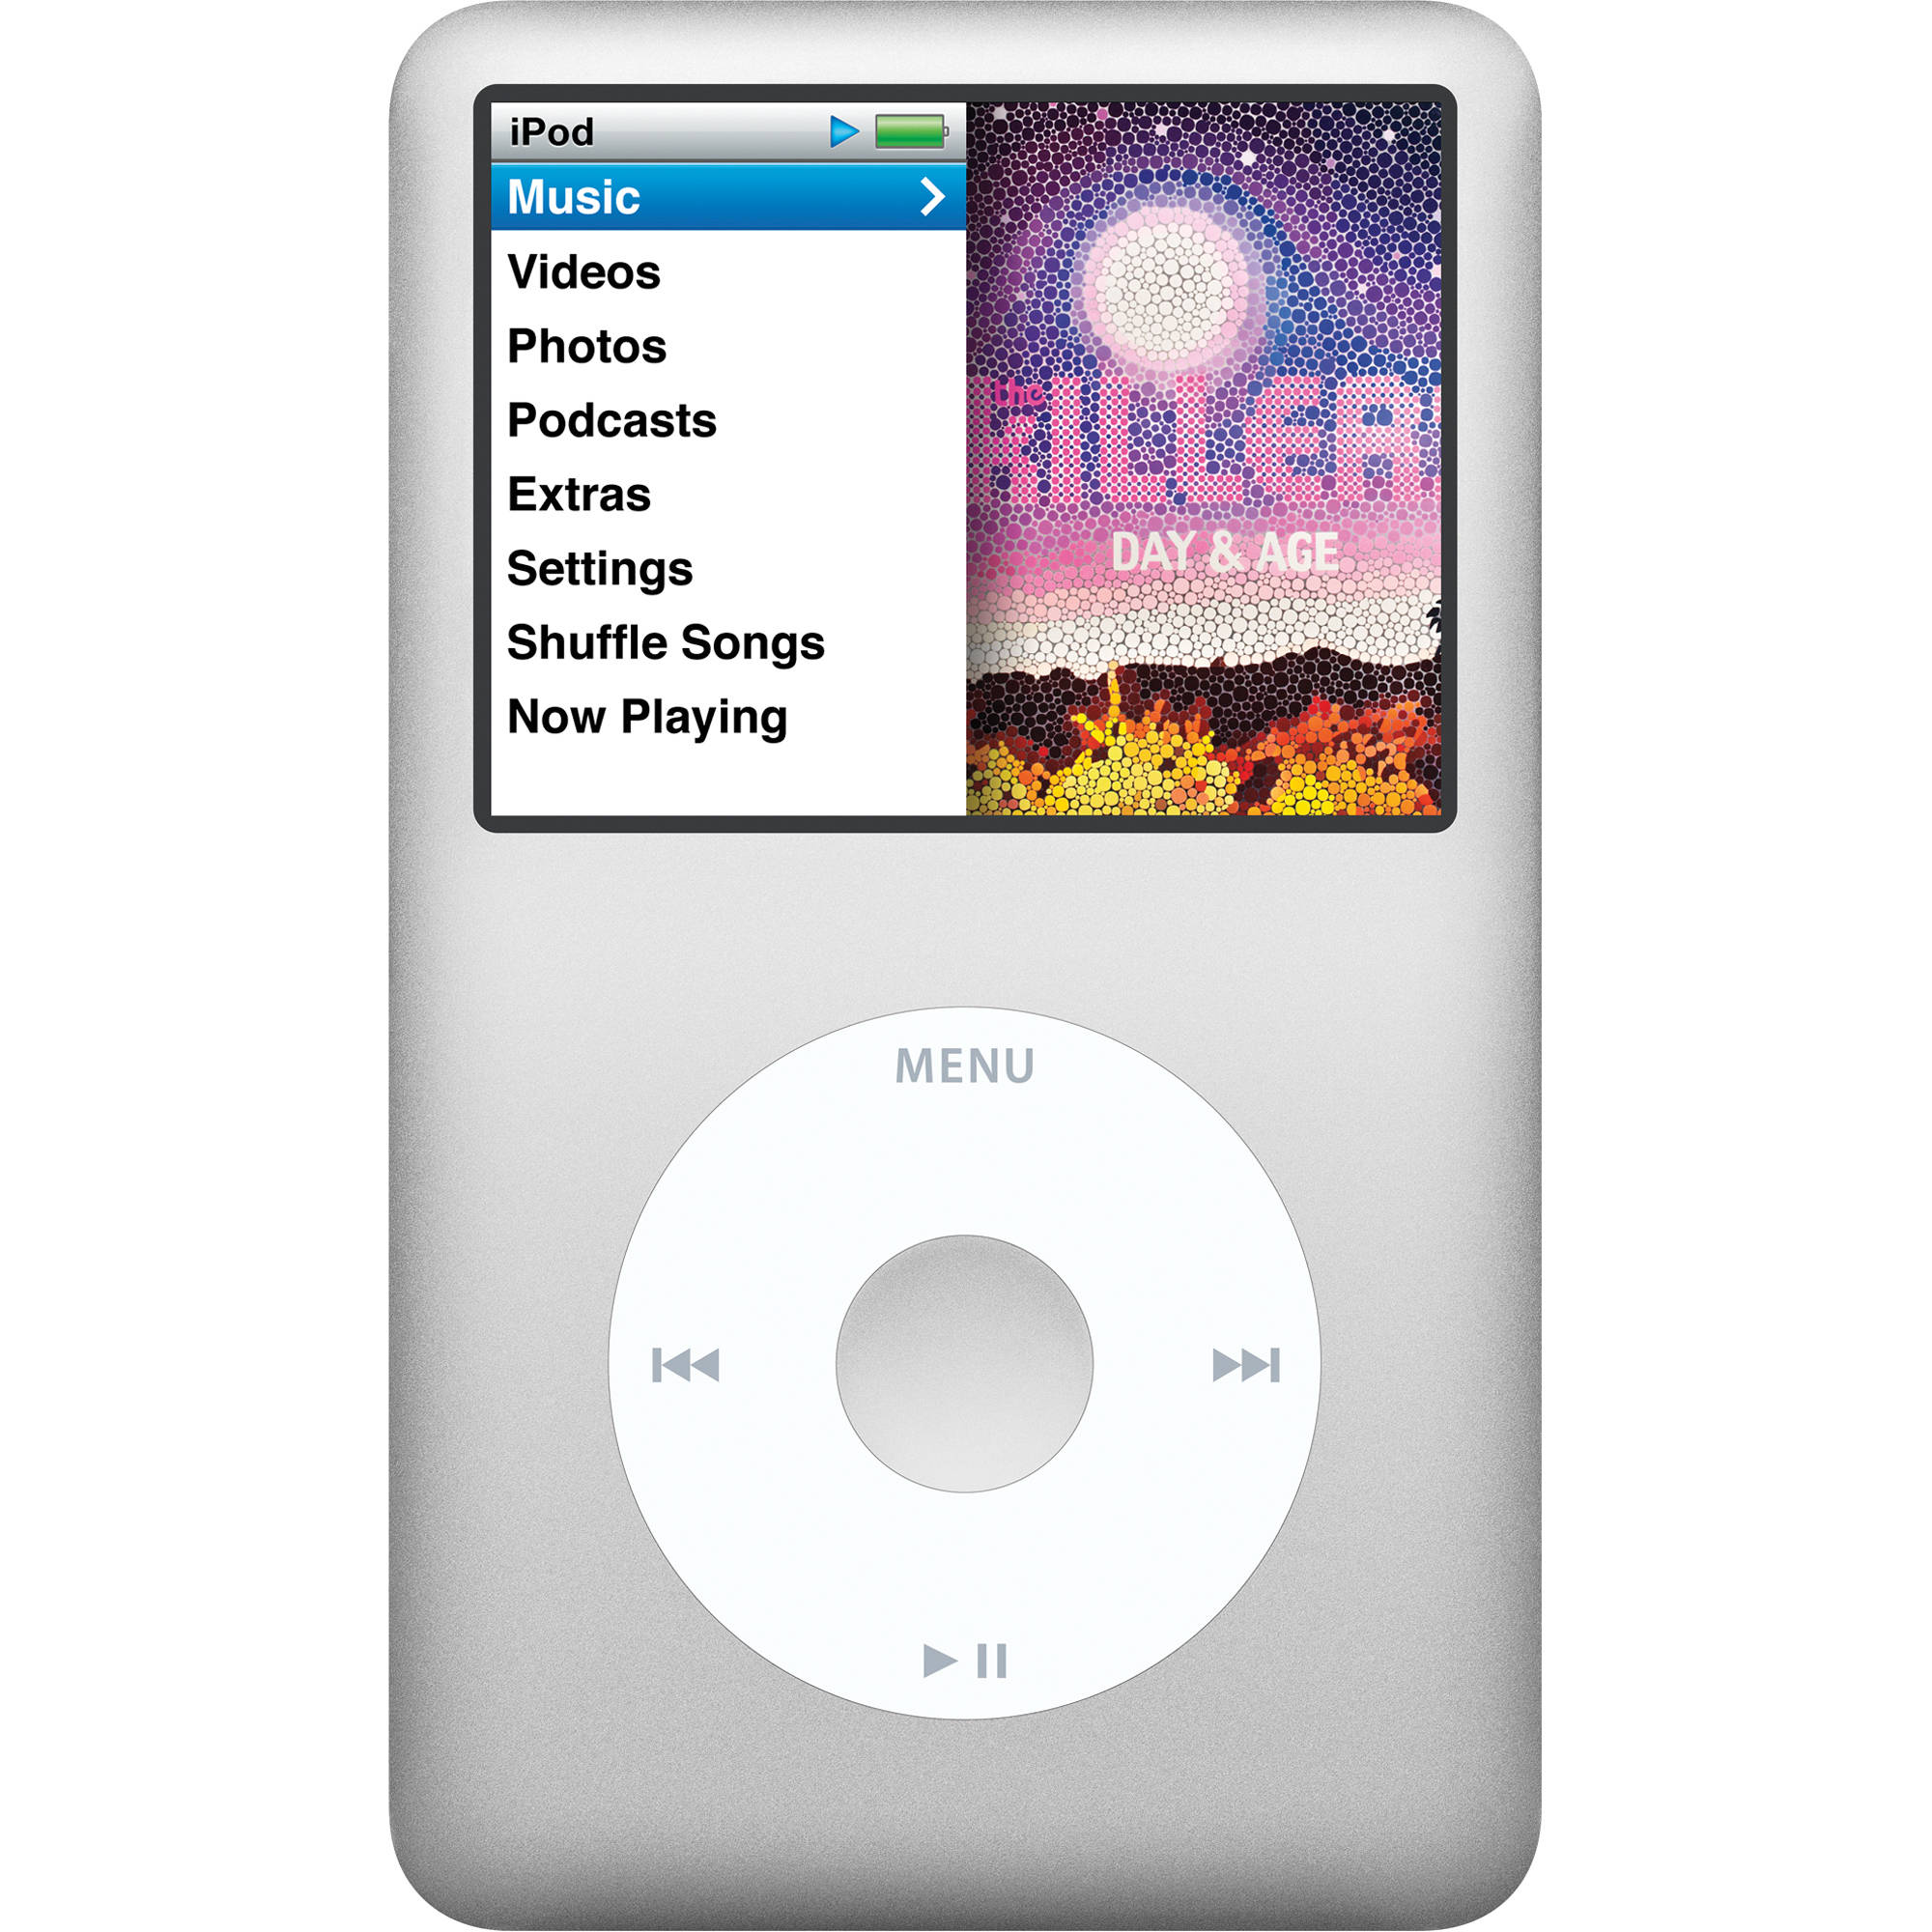 apple 160gb ipod classic silver 7th generation mc293ll a b h rh bhphotovideo com manual for ipod classic 160gb manual de usuario ipod classic 160gb